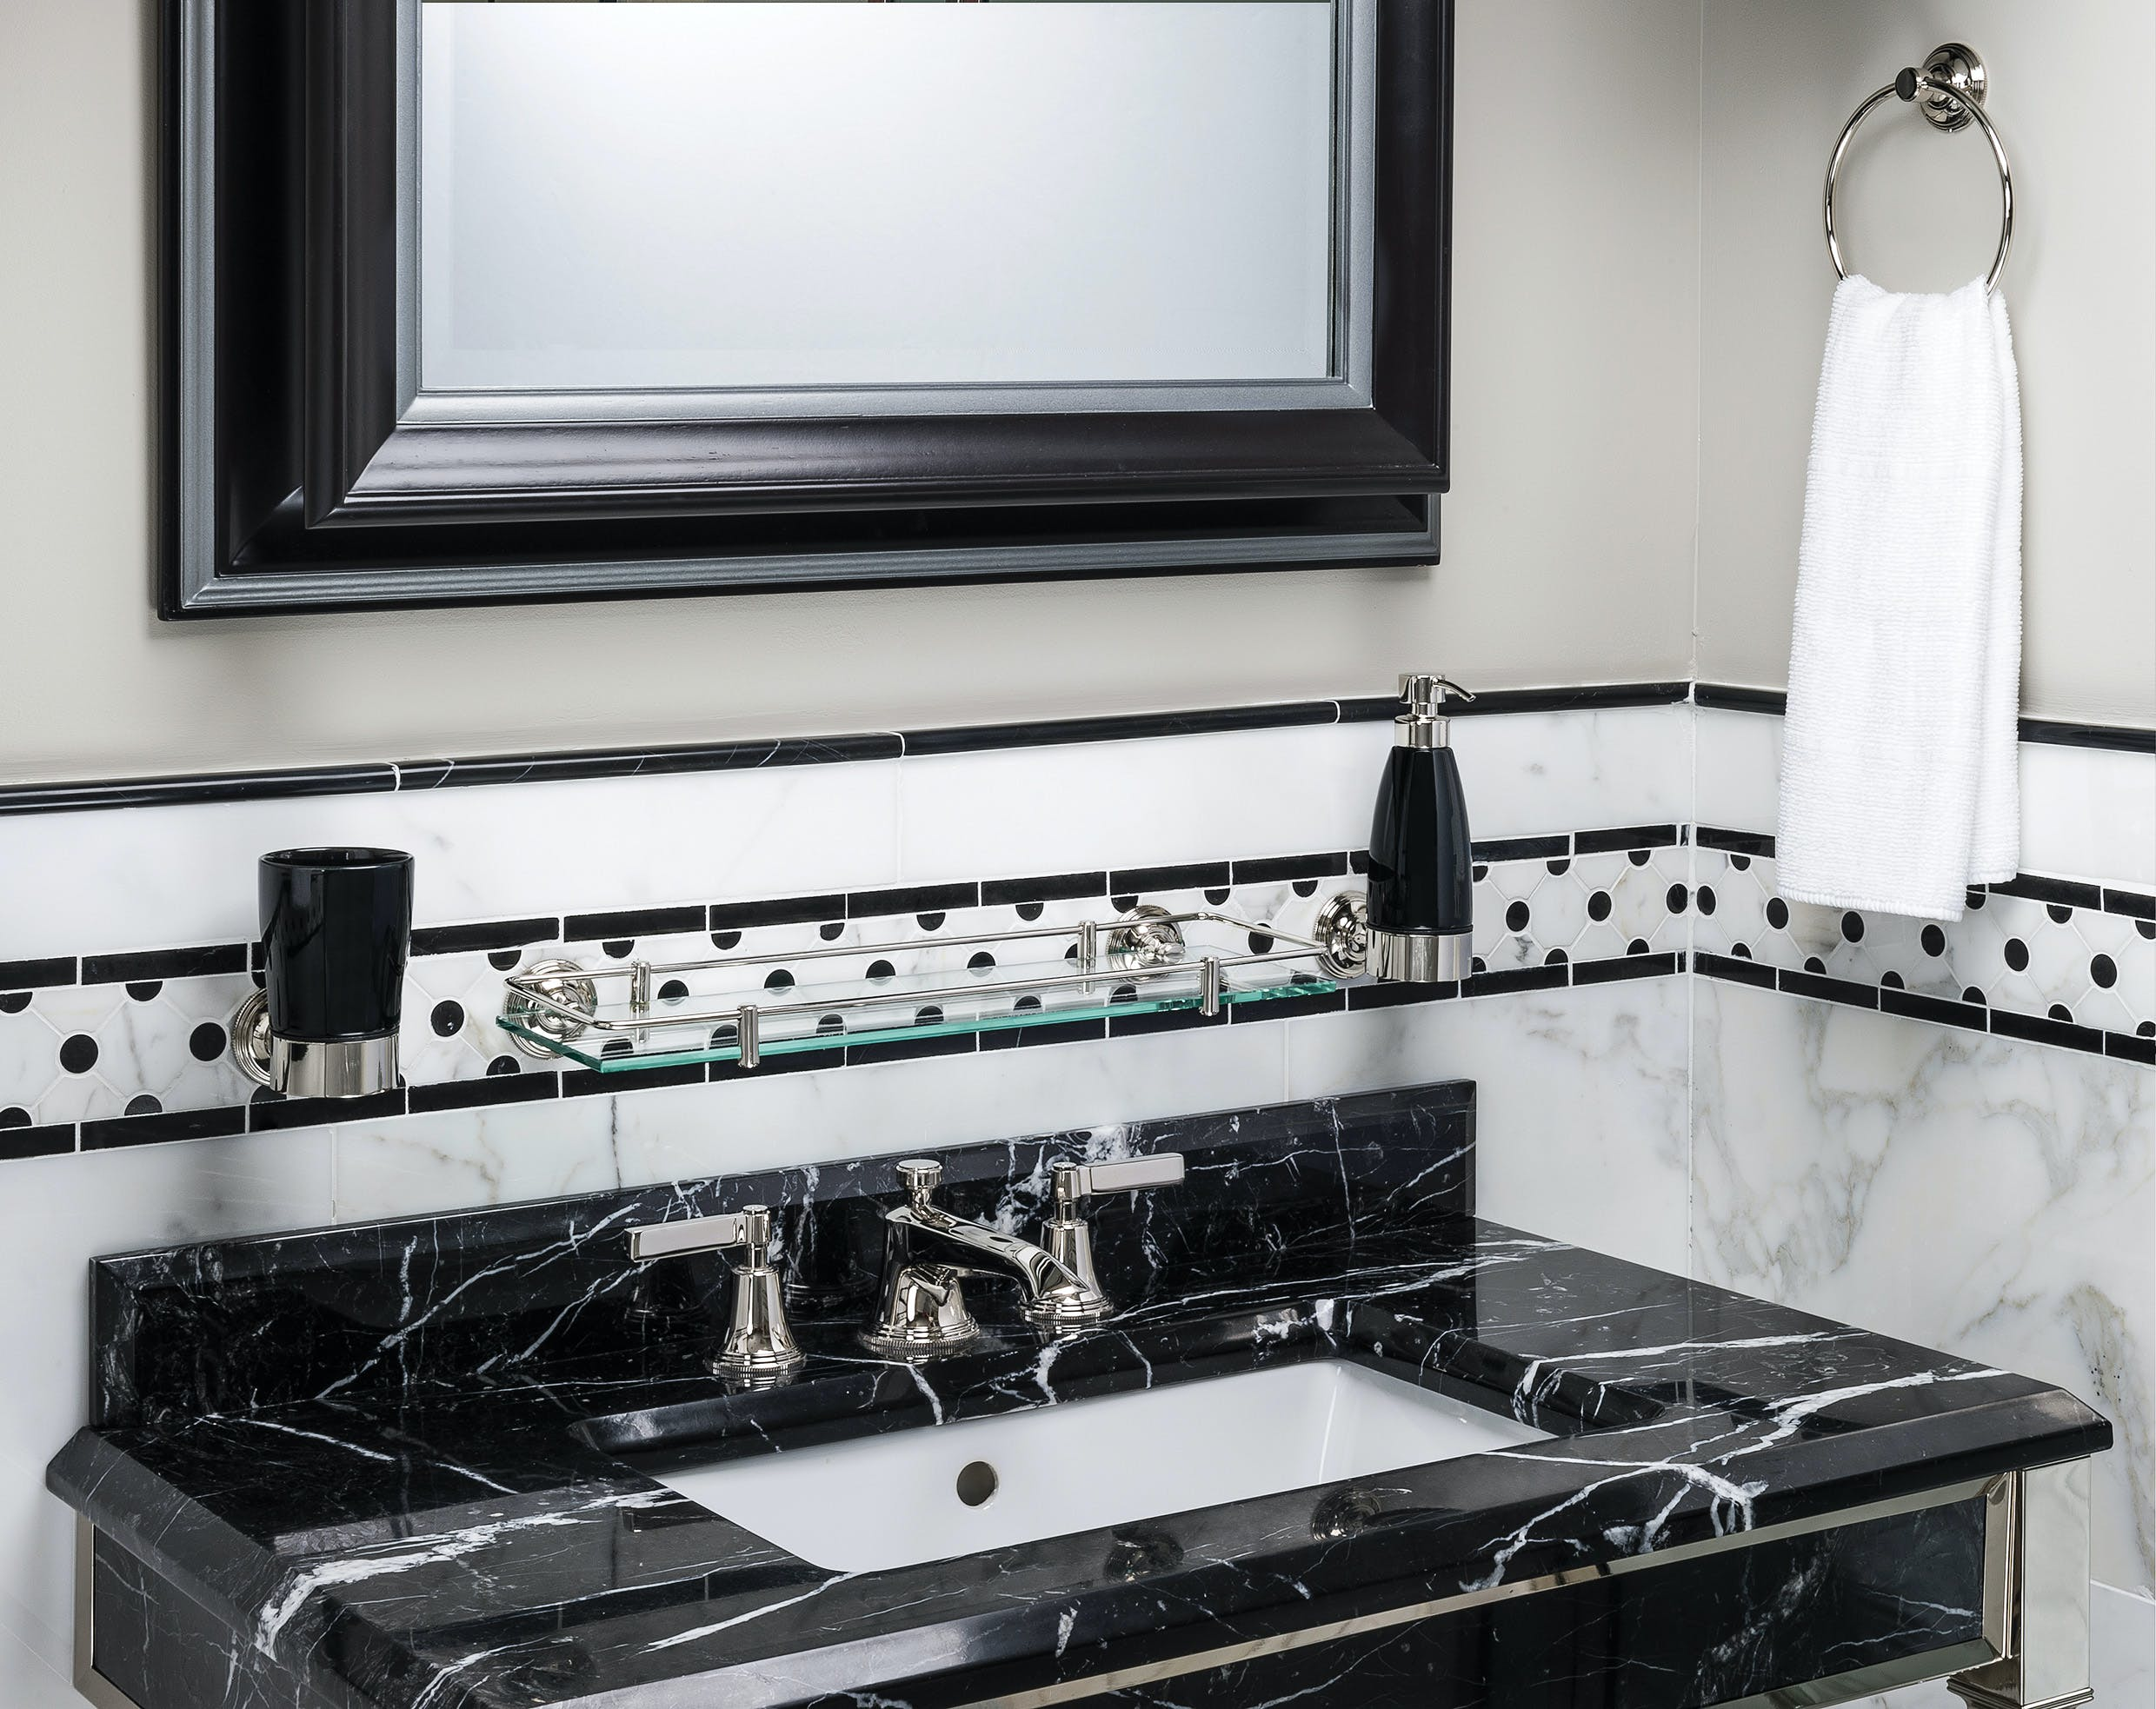 Luxury Art Deco taps mounted on a black marble basin